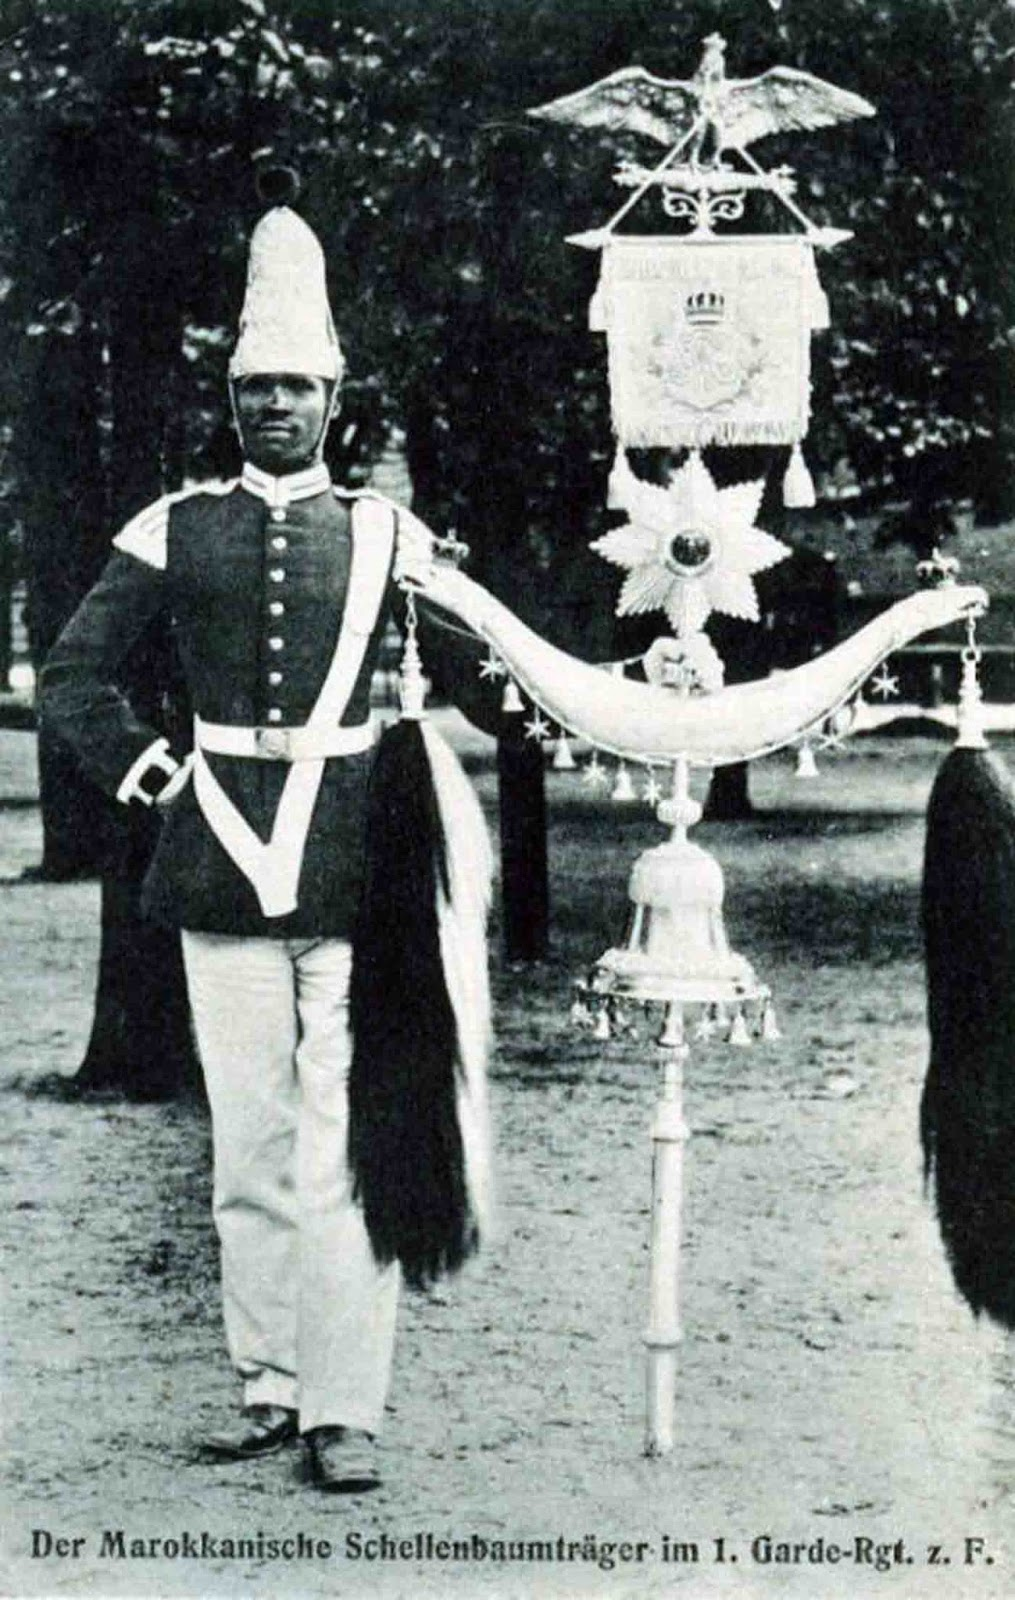 Schellenbaum player Ben Aissa, 1st Prussian Foot Guards.